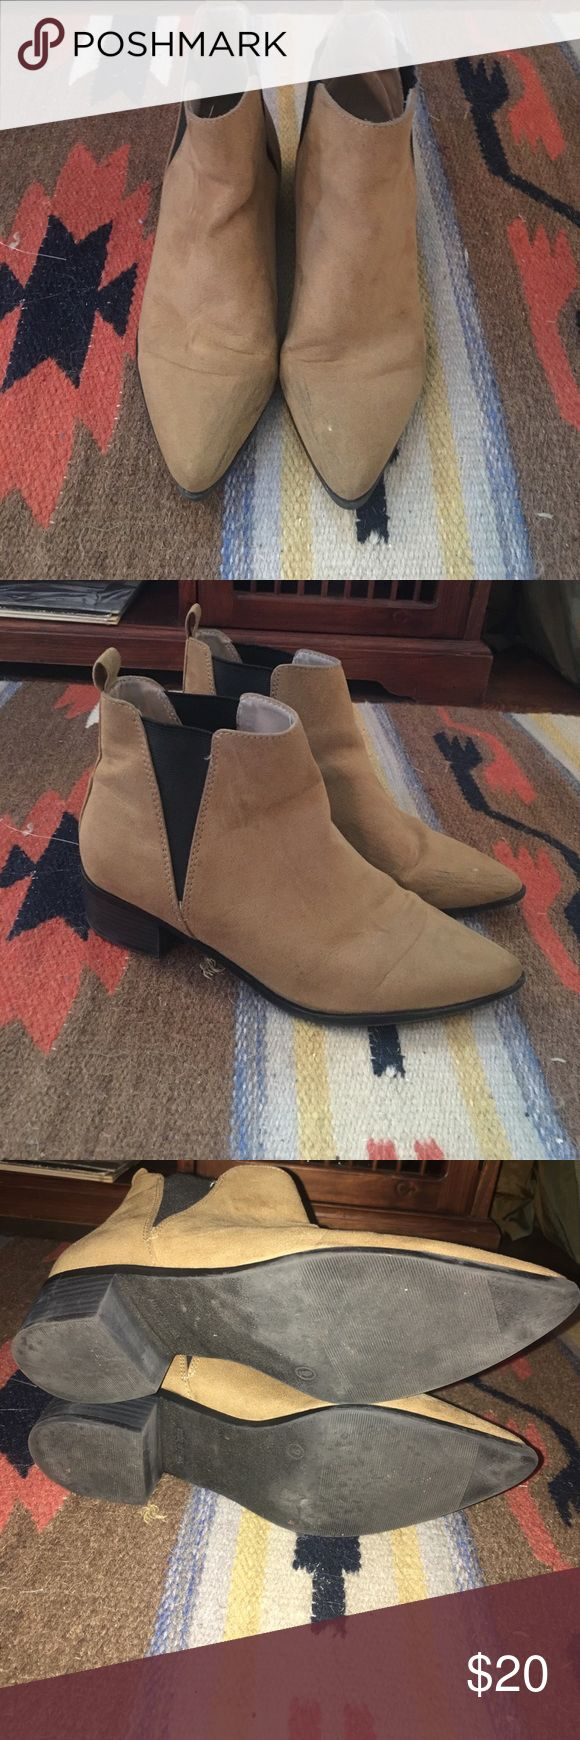 Cute and Comfy Chelsea Ankle Boot Super cute Black and Tan Chelsea boot perfect for fall and winter! Only worn a couple of times. There is some black scuffing on the toes and side but can come off. Old Navy Shoes Ankle Boots & Booties